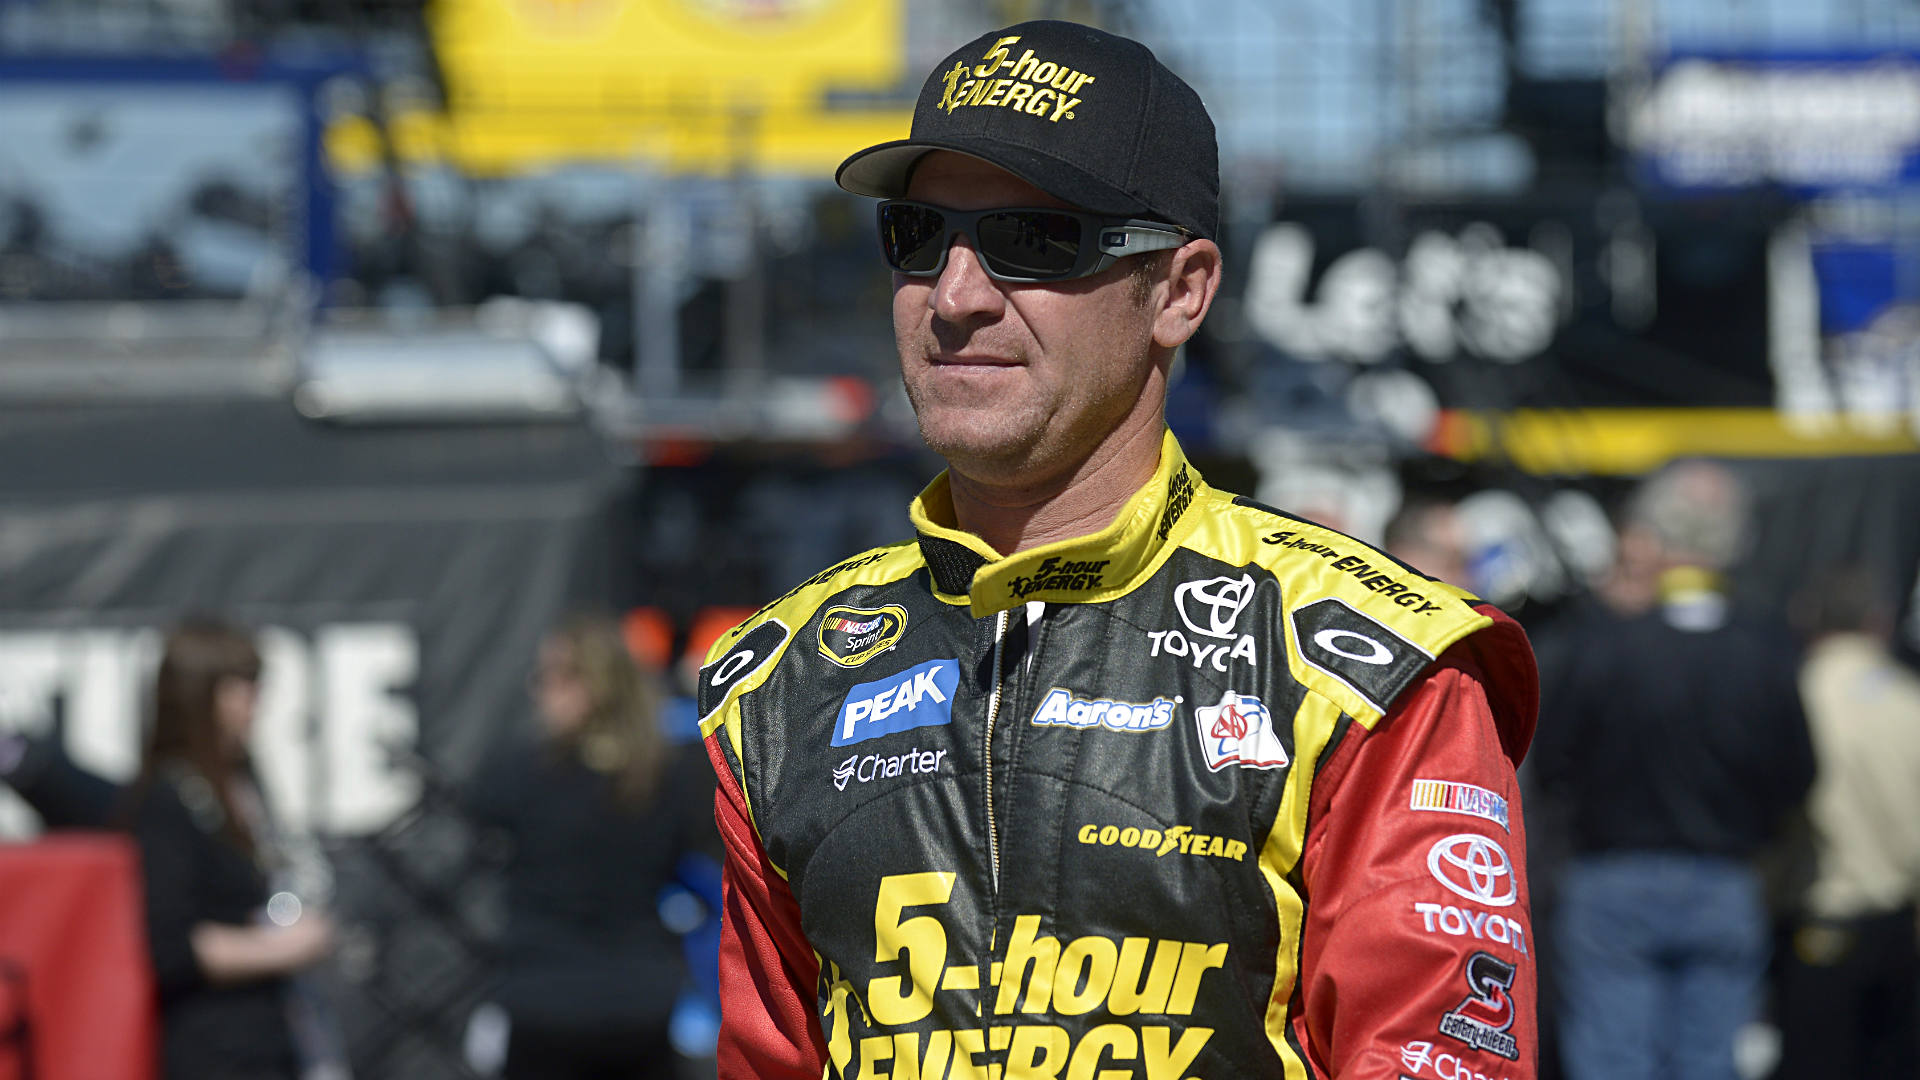 Clint-Bowyer-FTR-050614-AP